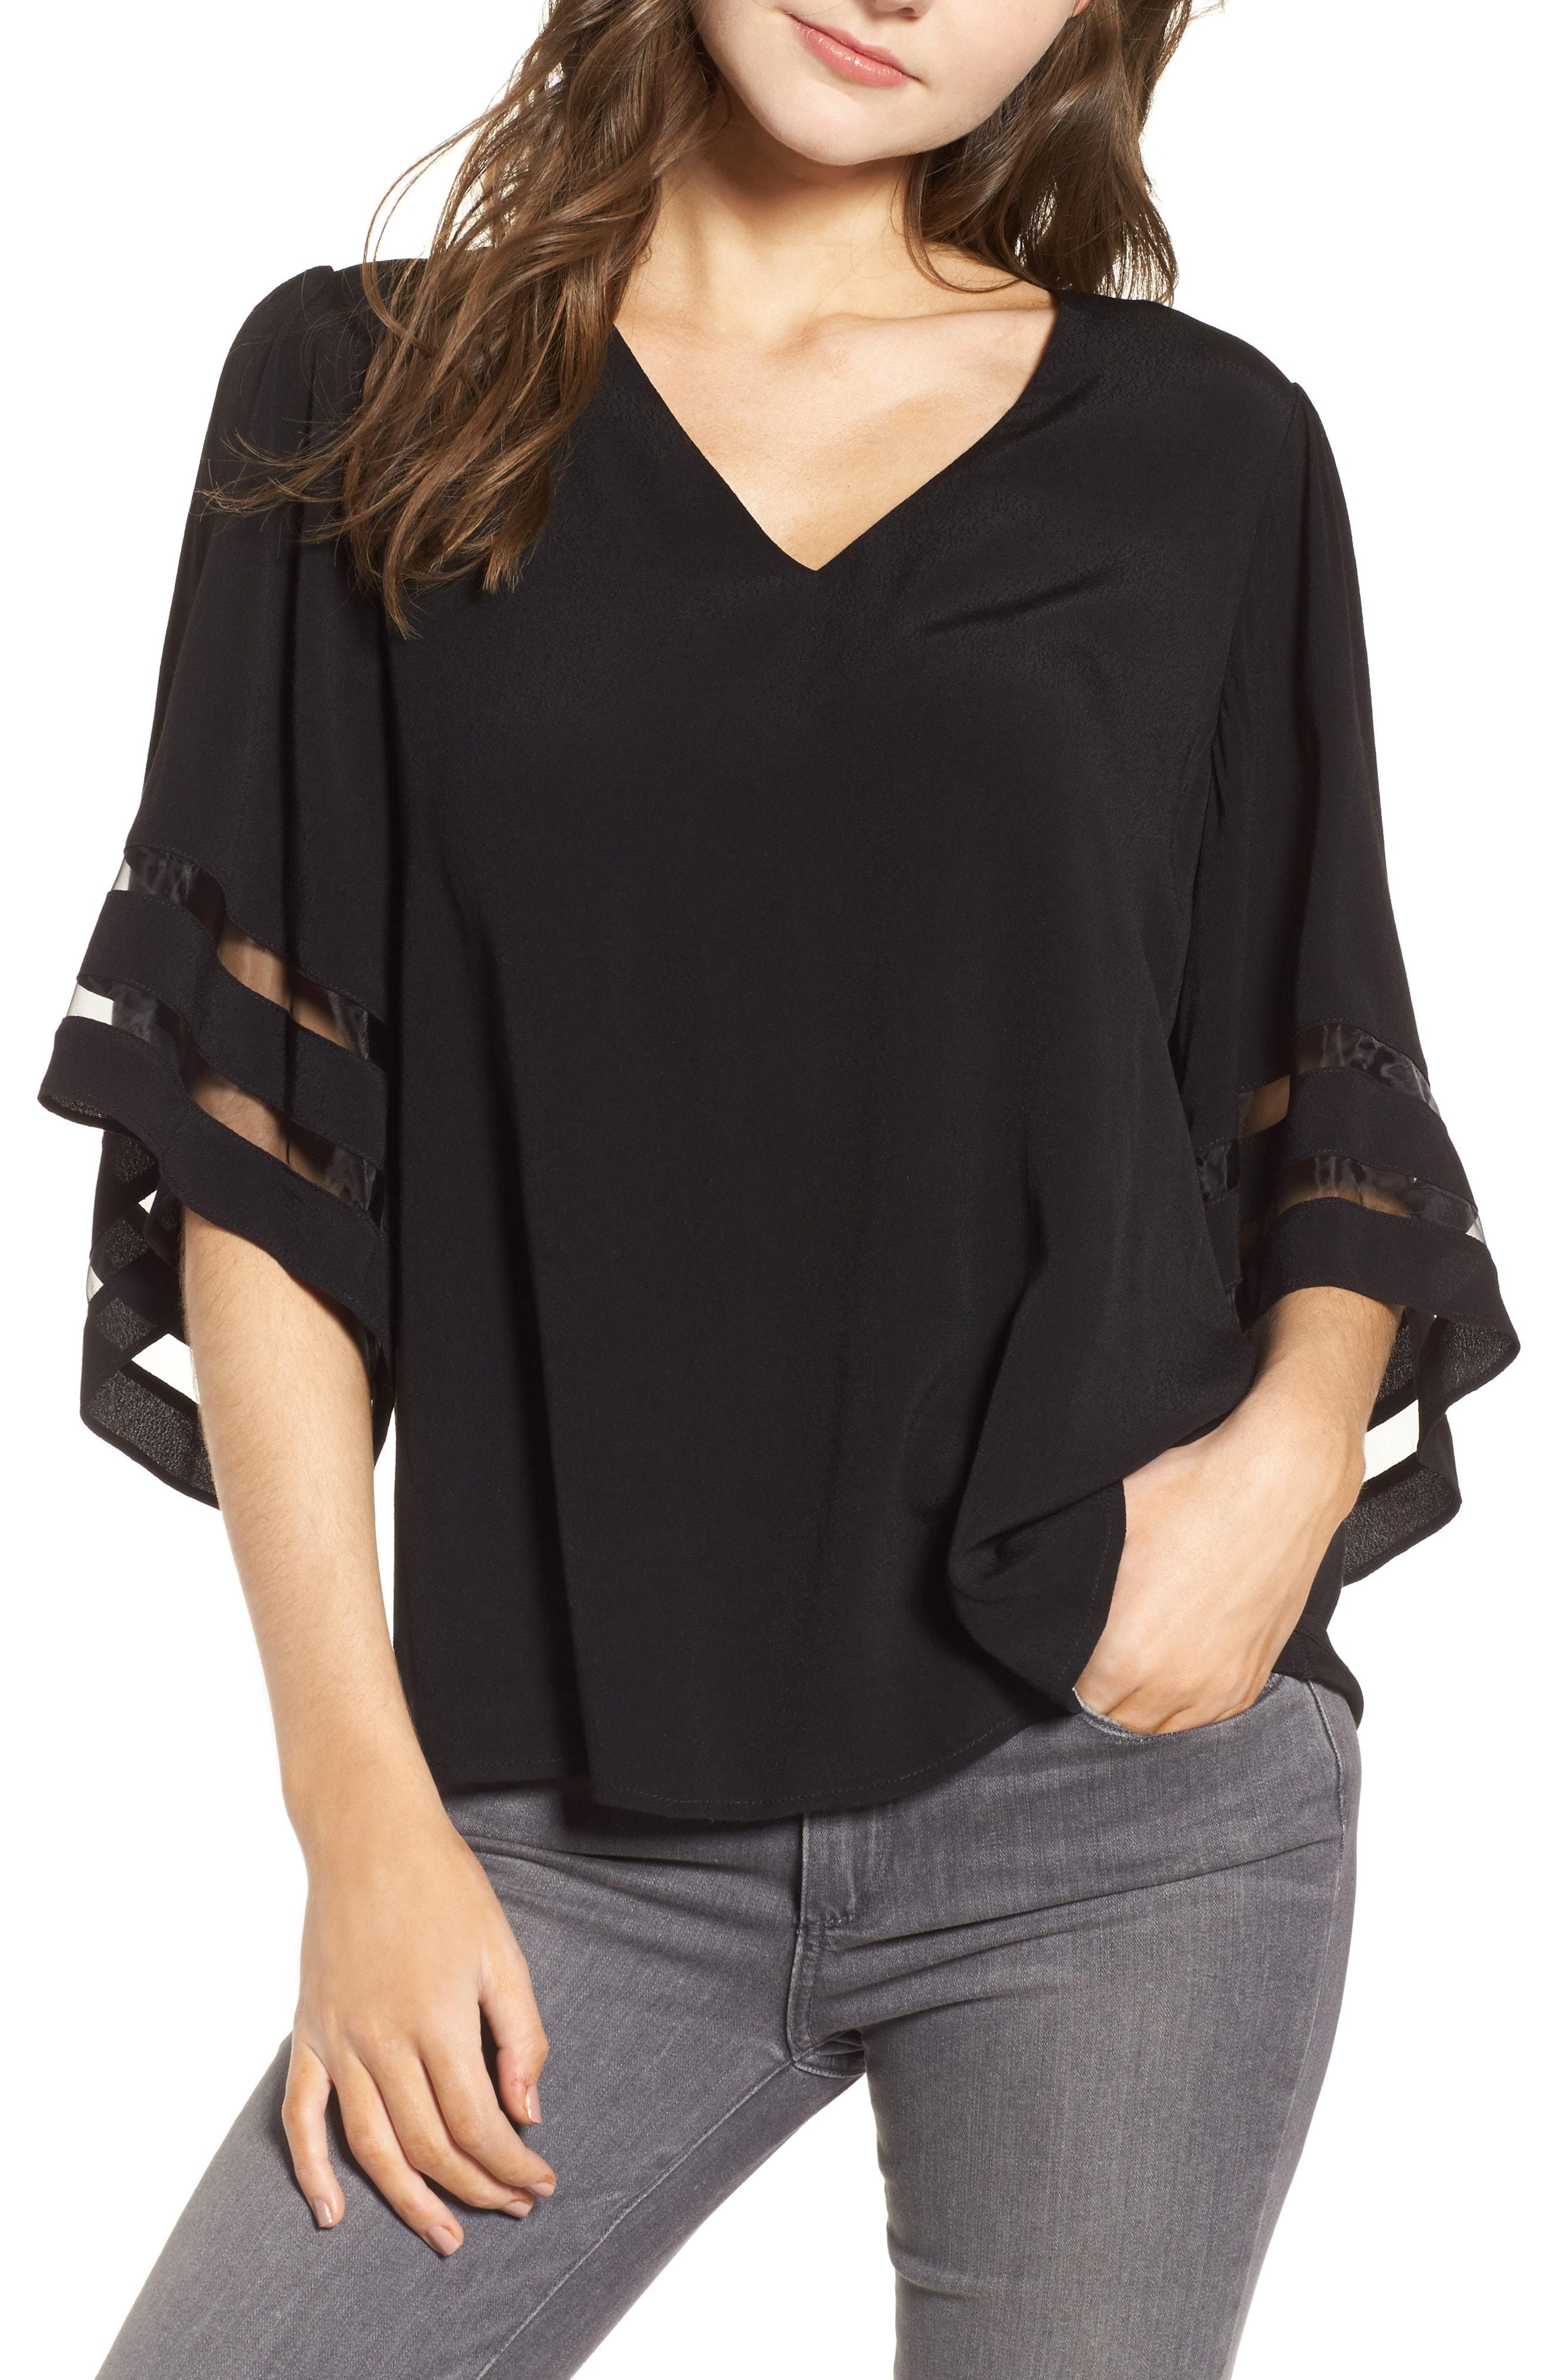 ac8dd22f852 Lyst - Chelsea28 Illusion Sleeve Top in Black - Save 68%